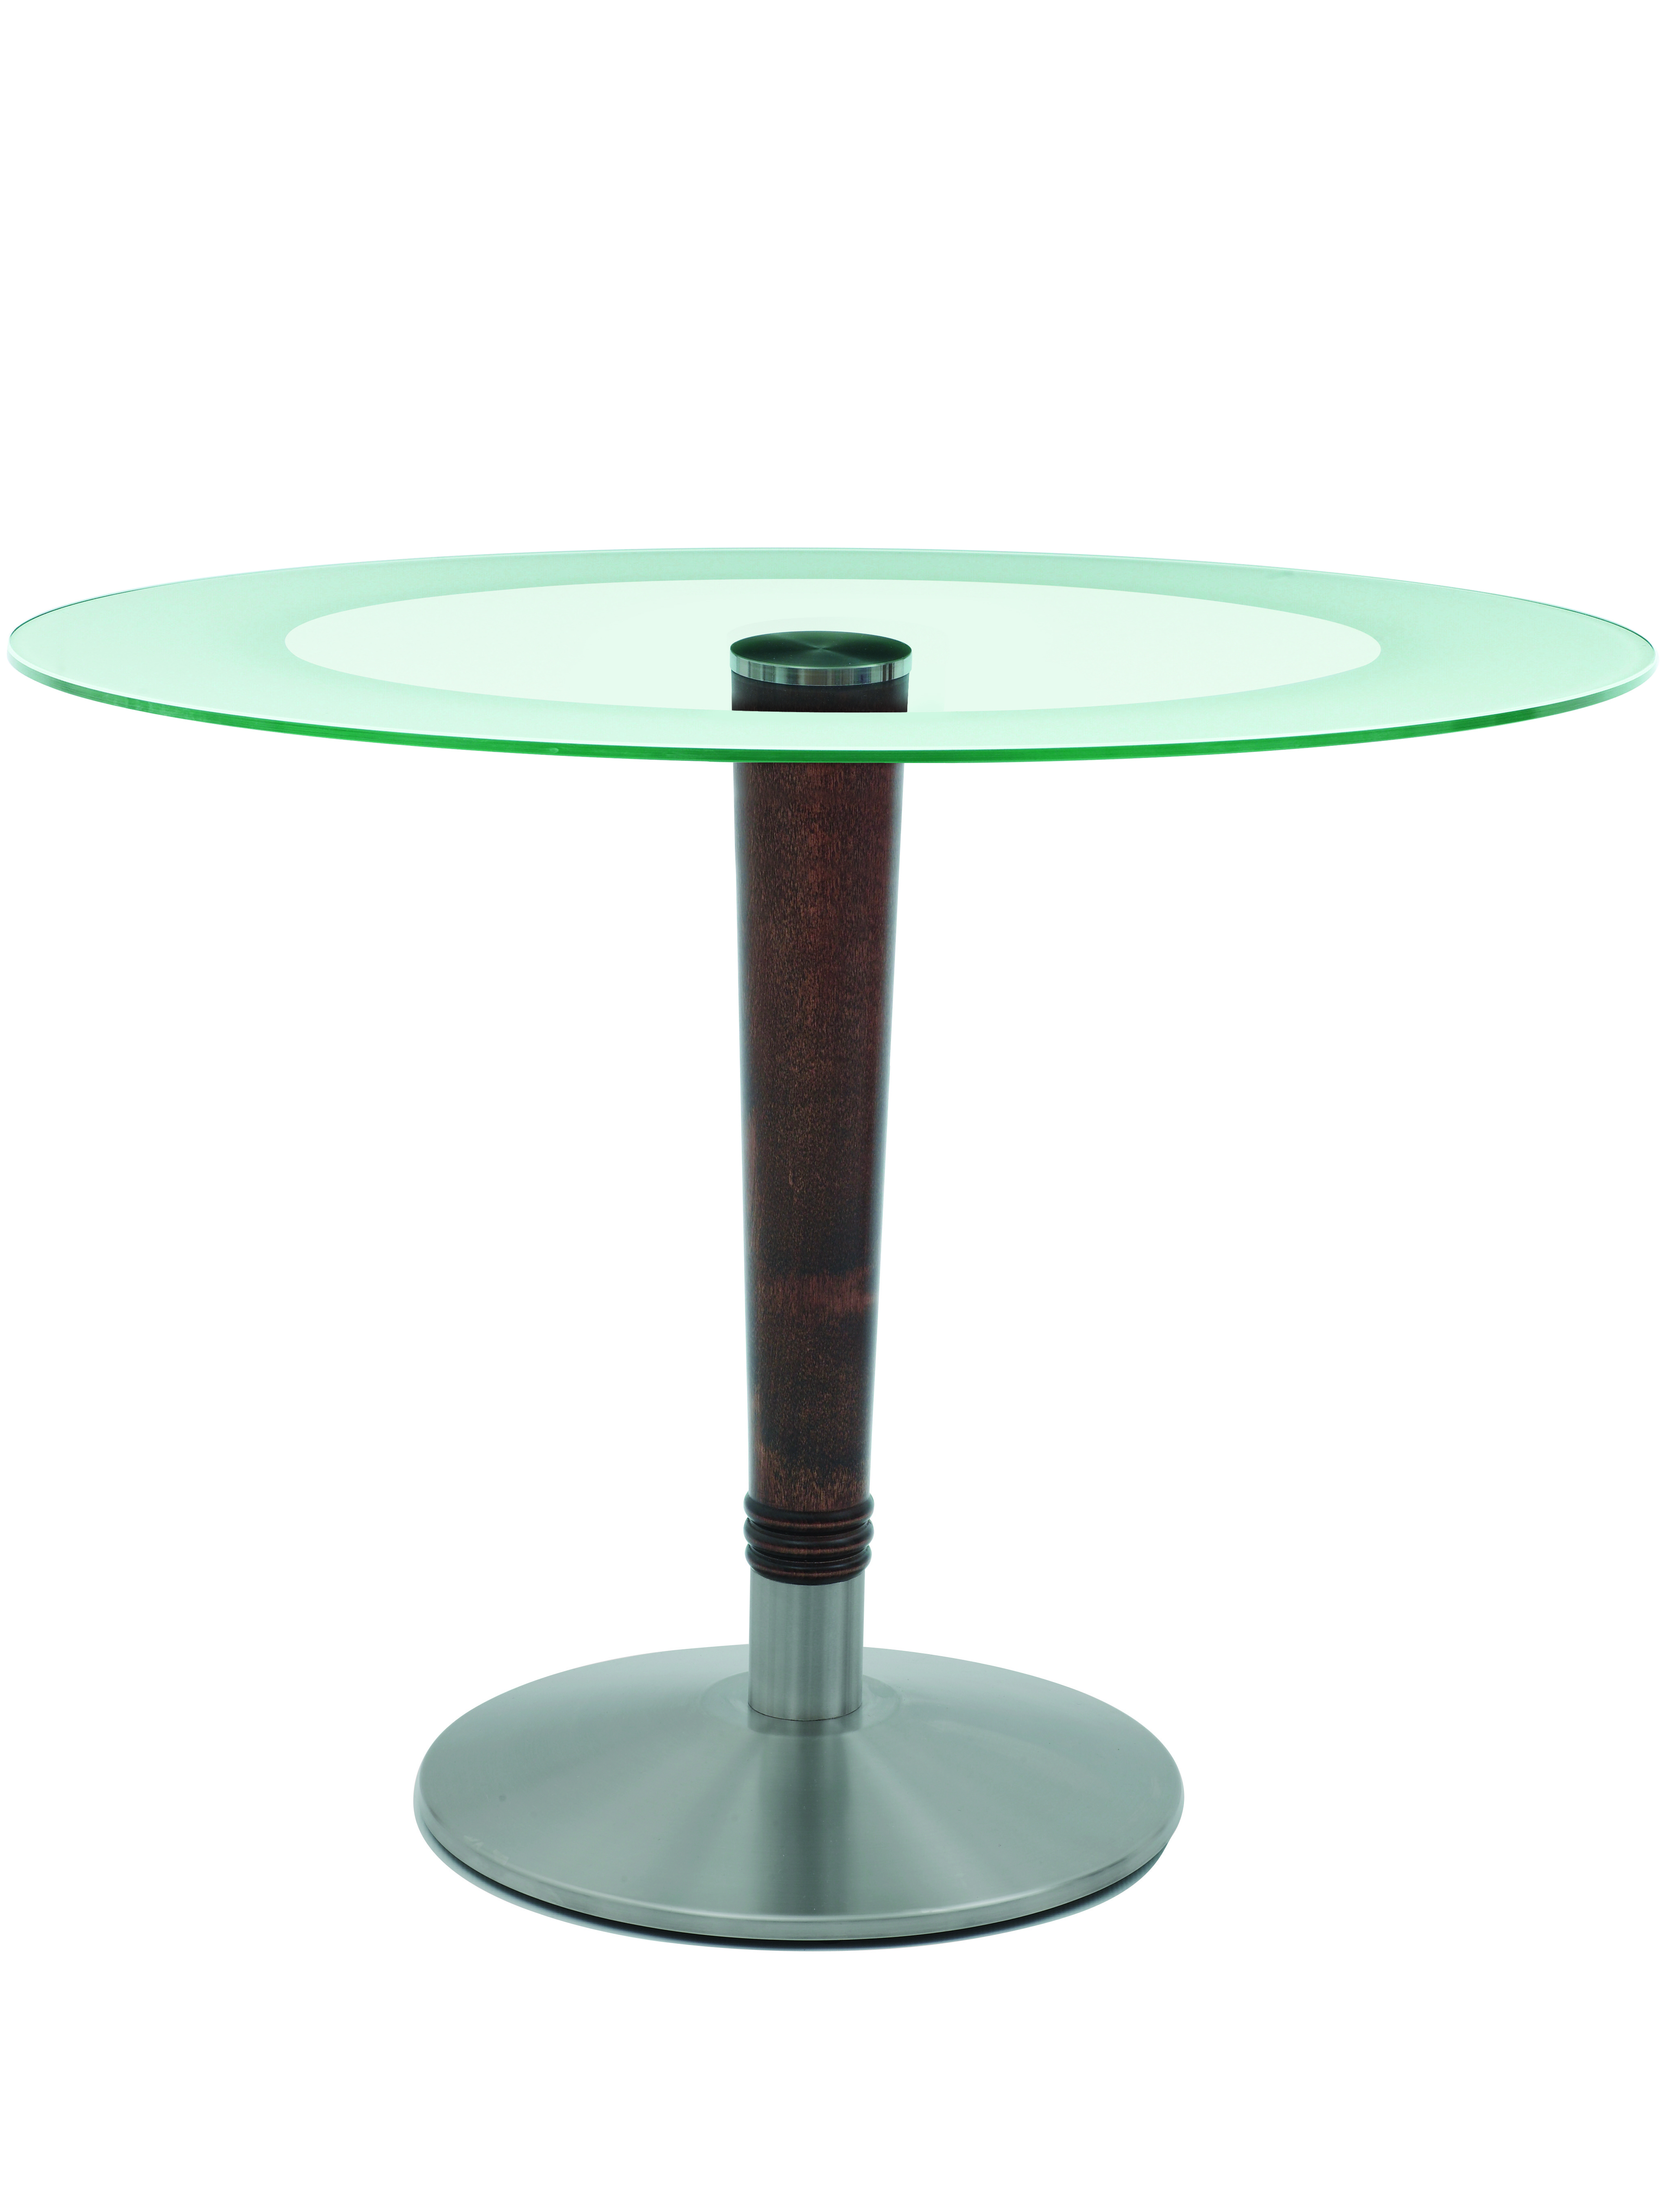 Harvey glass top oval dining table knightsbridge furniture for Oval glass dining table